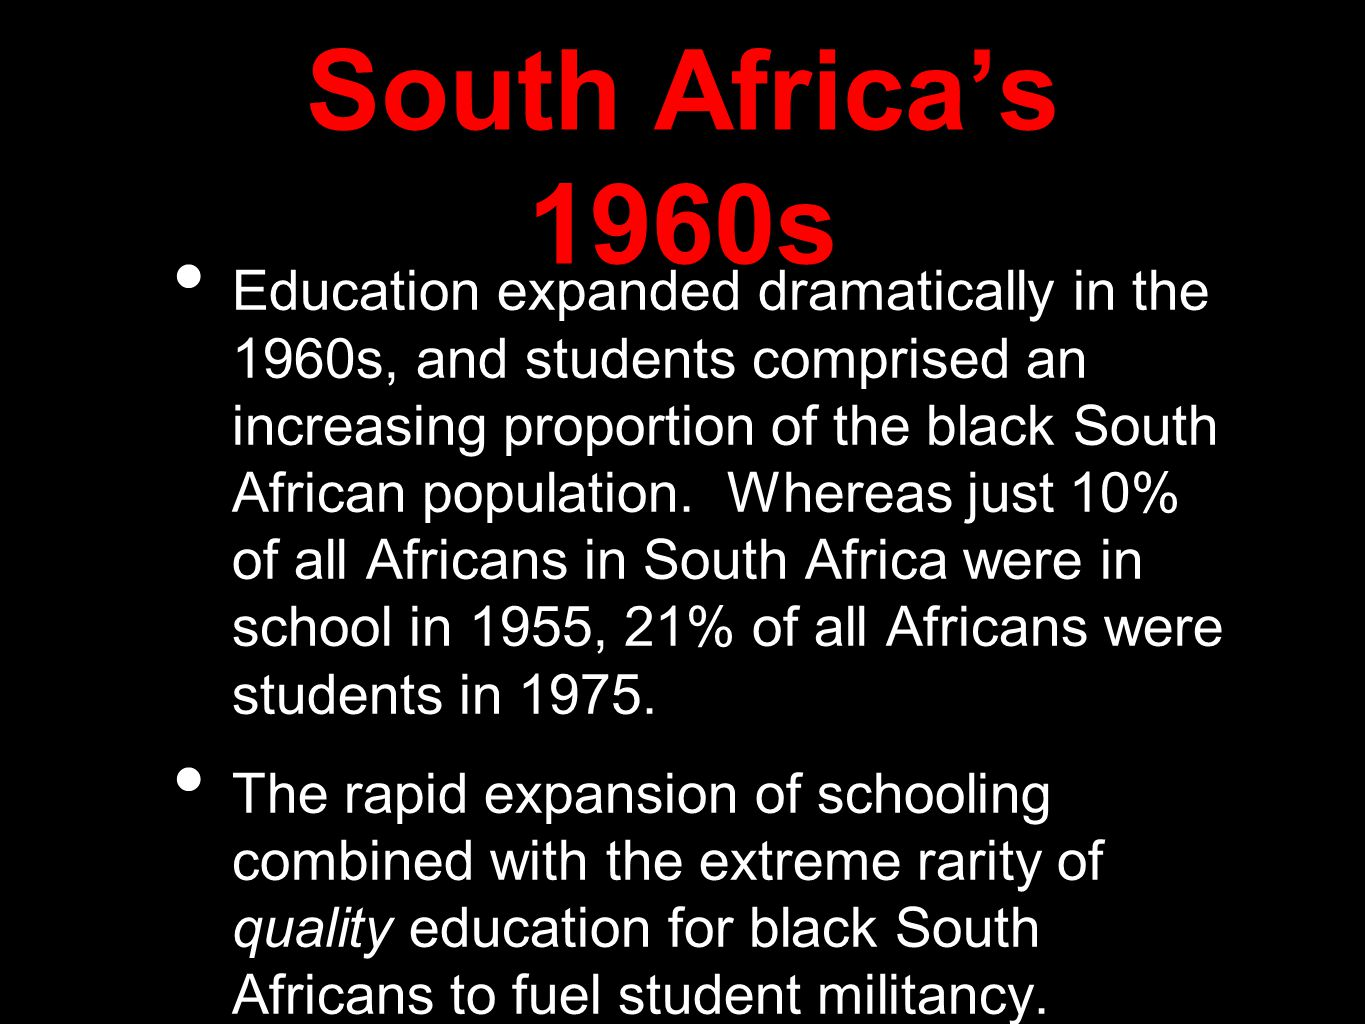 South Africa's 1960s Education expanded dramatically in the 1960s, and students comprised an increasing proportion of the black South African population.